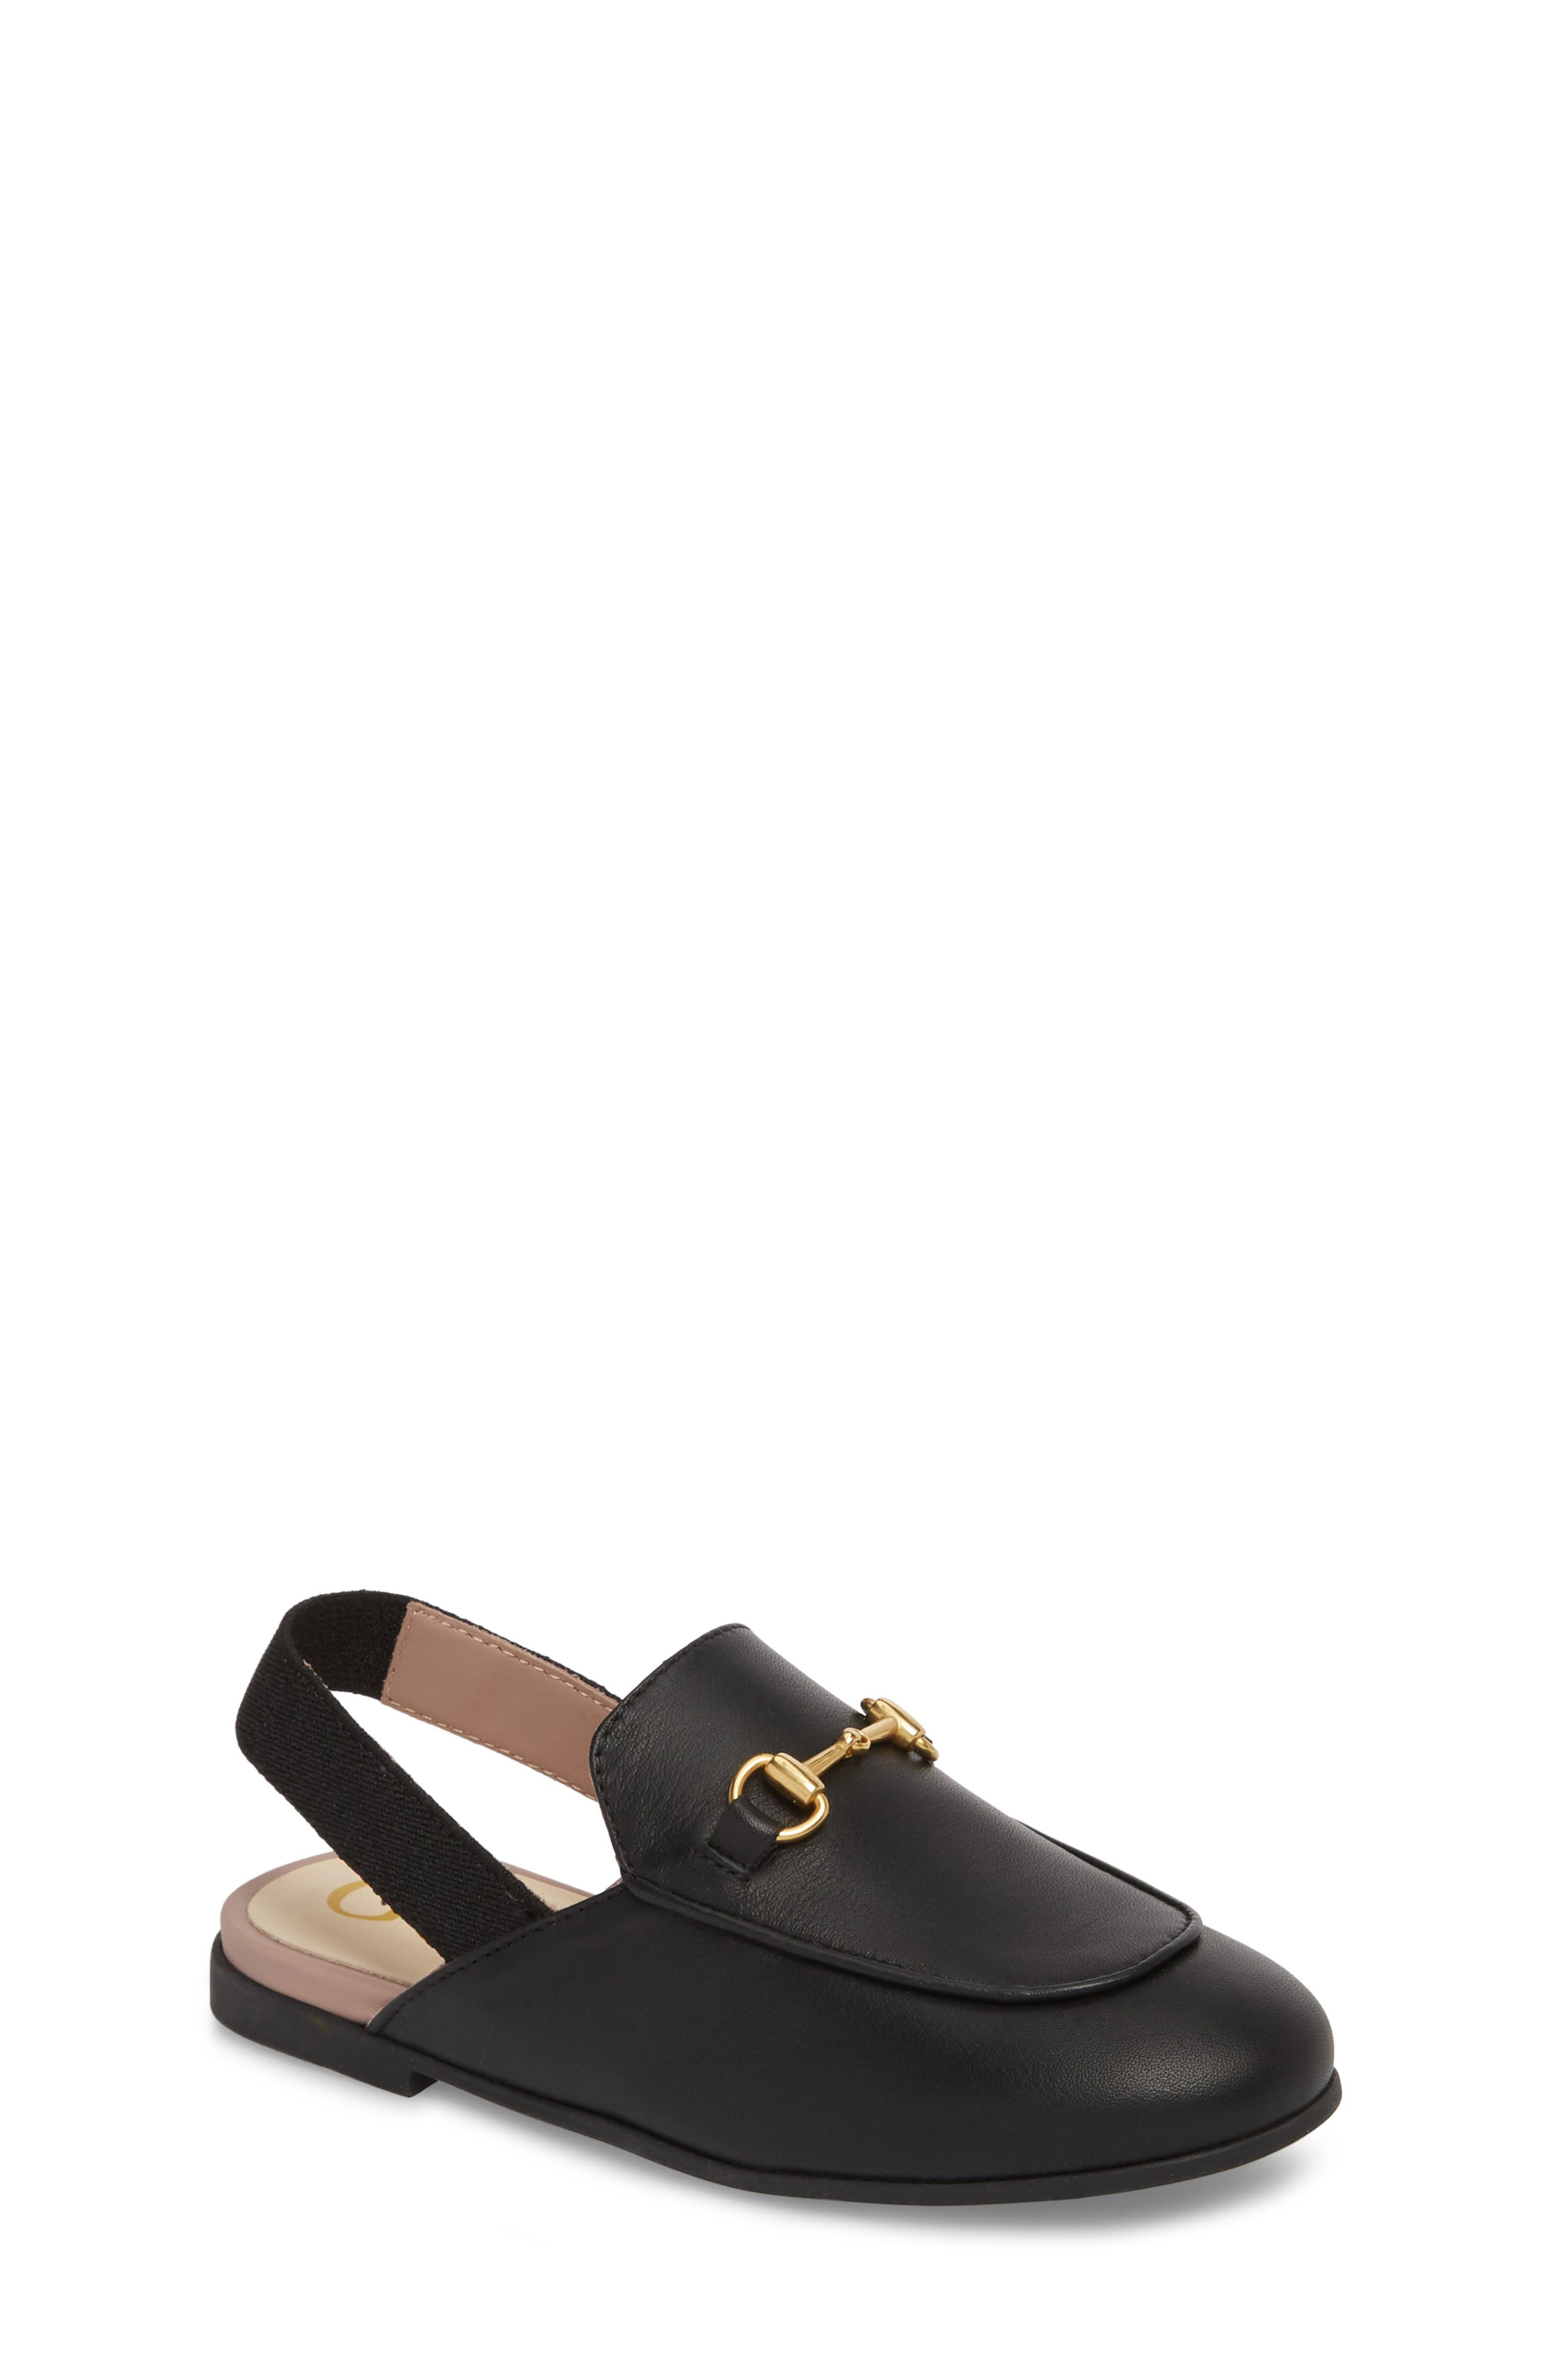 GUCCI Princetown Loafer Mule, Main, color, BLACK/ BLACK